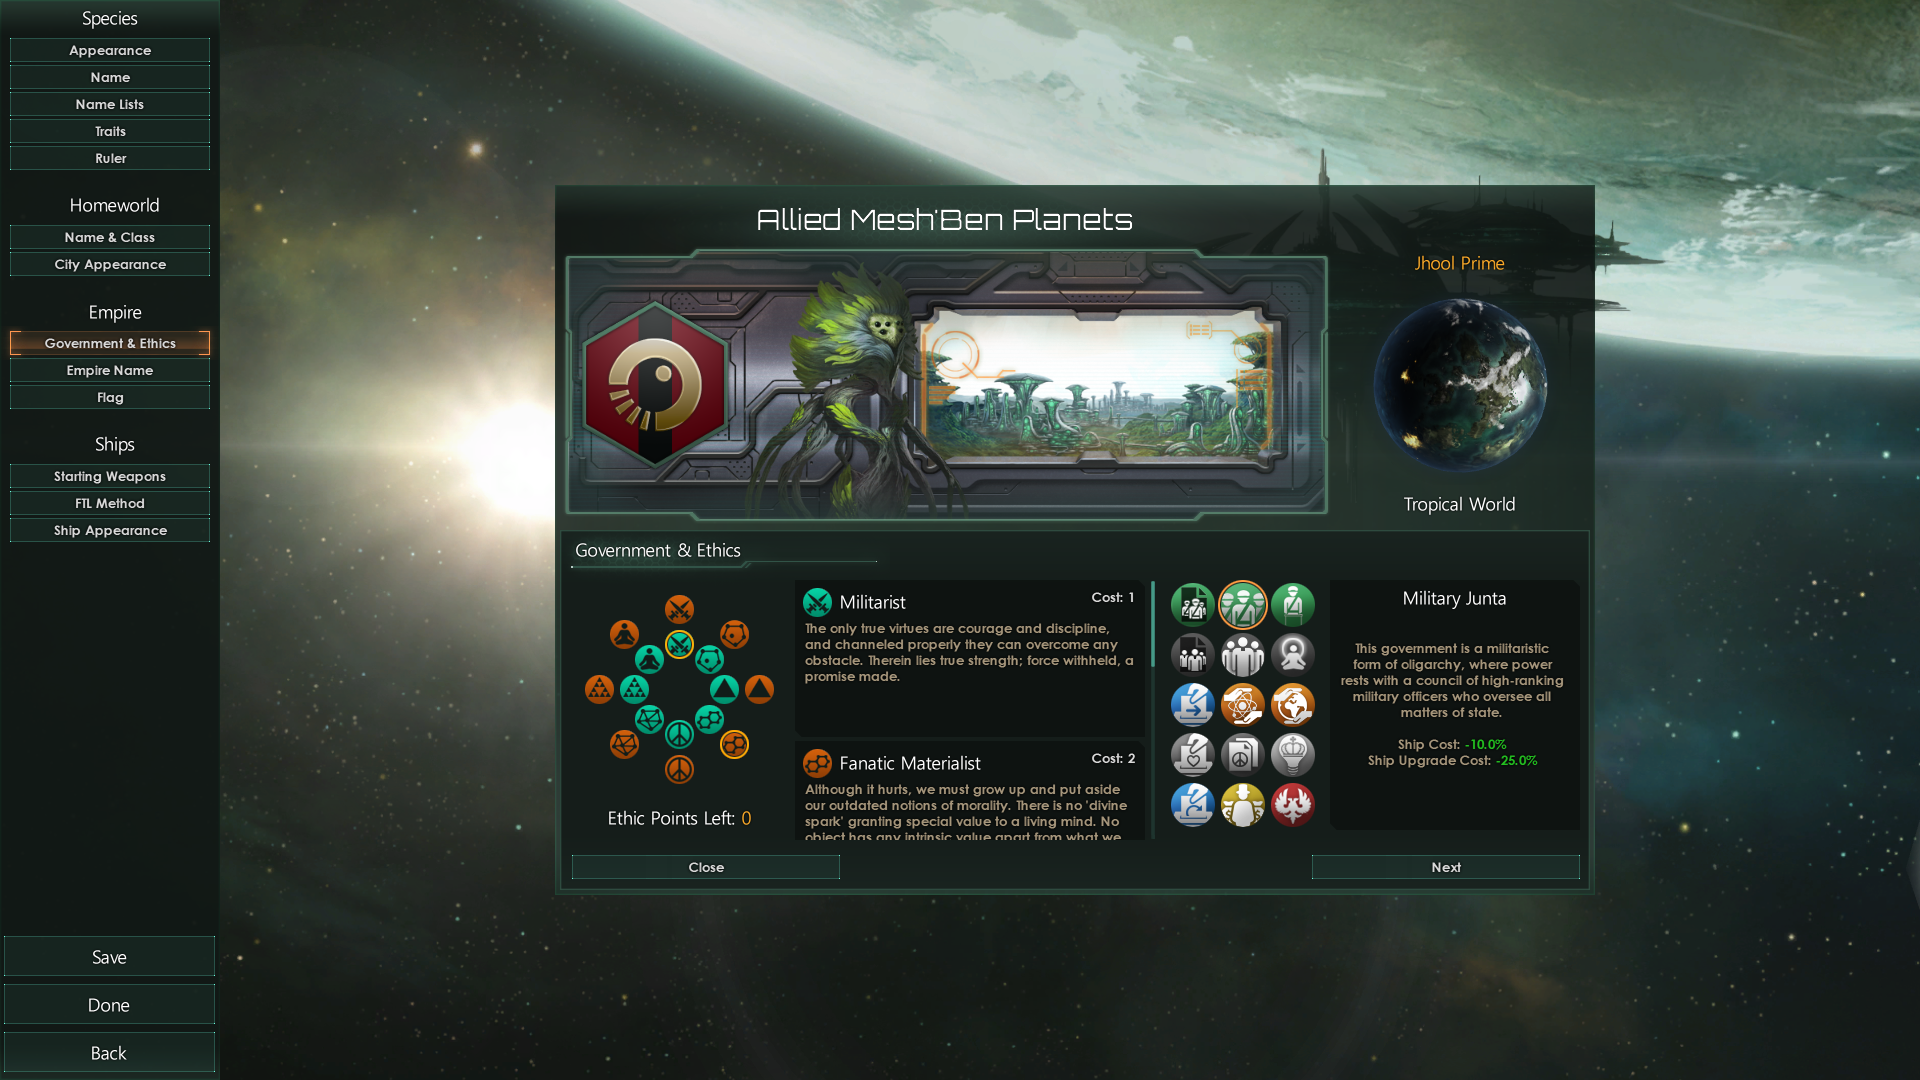 http://gamerwalkthroughs.com/wp-content/uploads/2016/04/Stellaris-Species.png